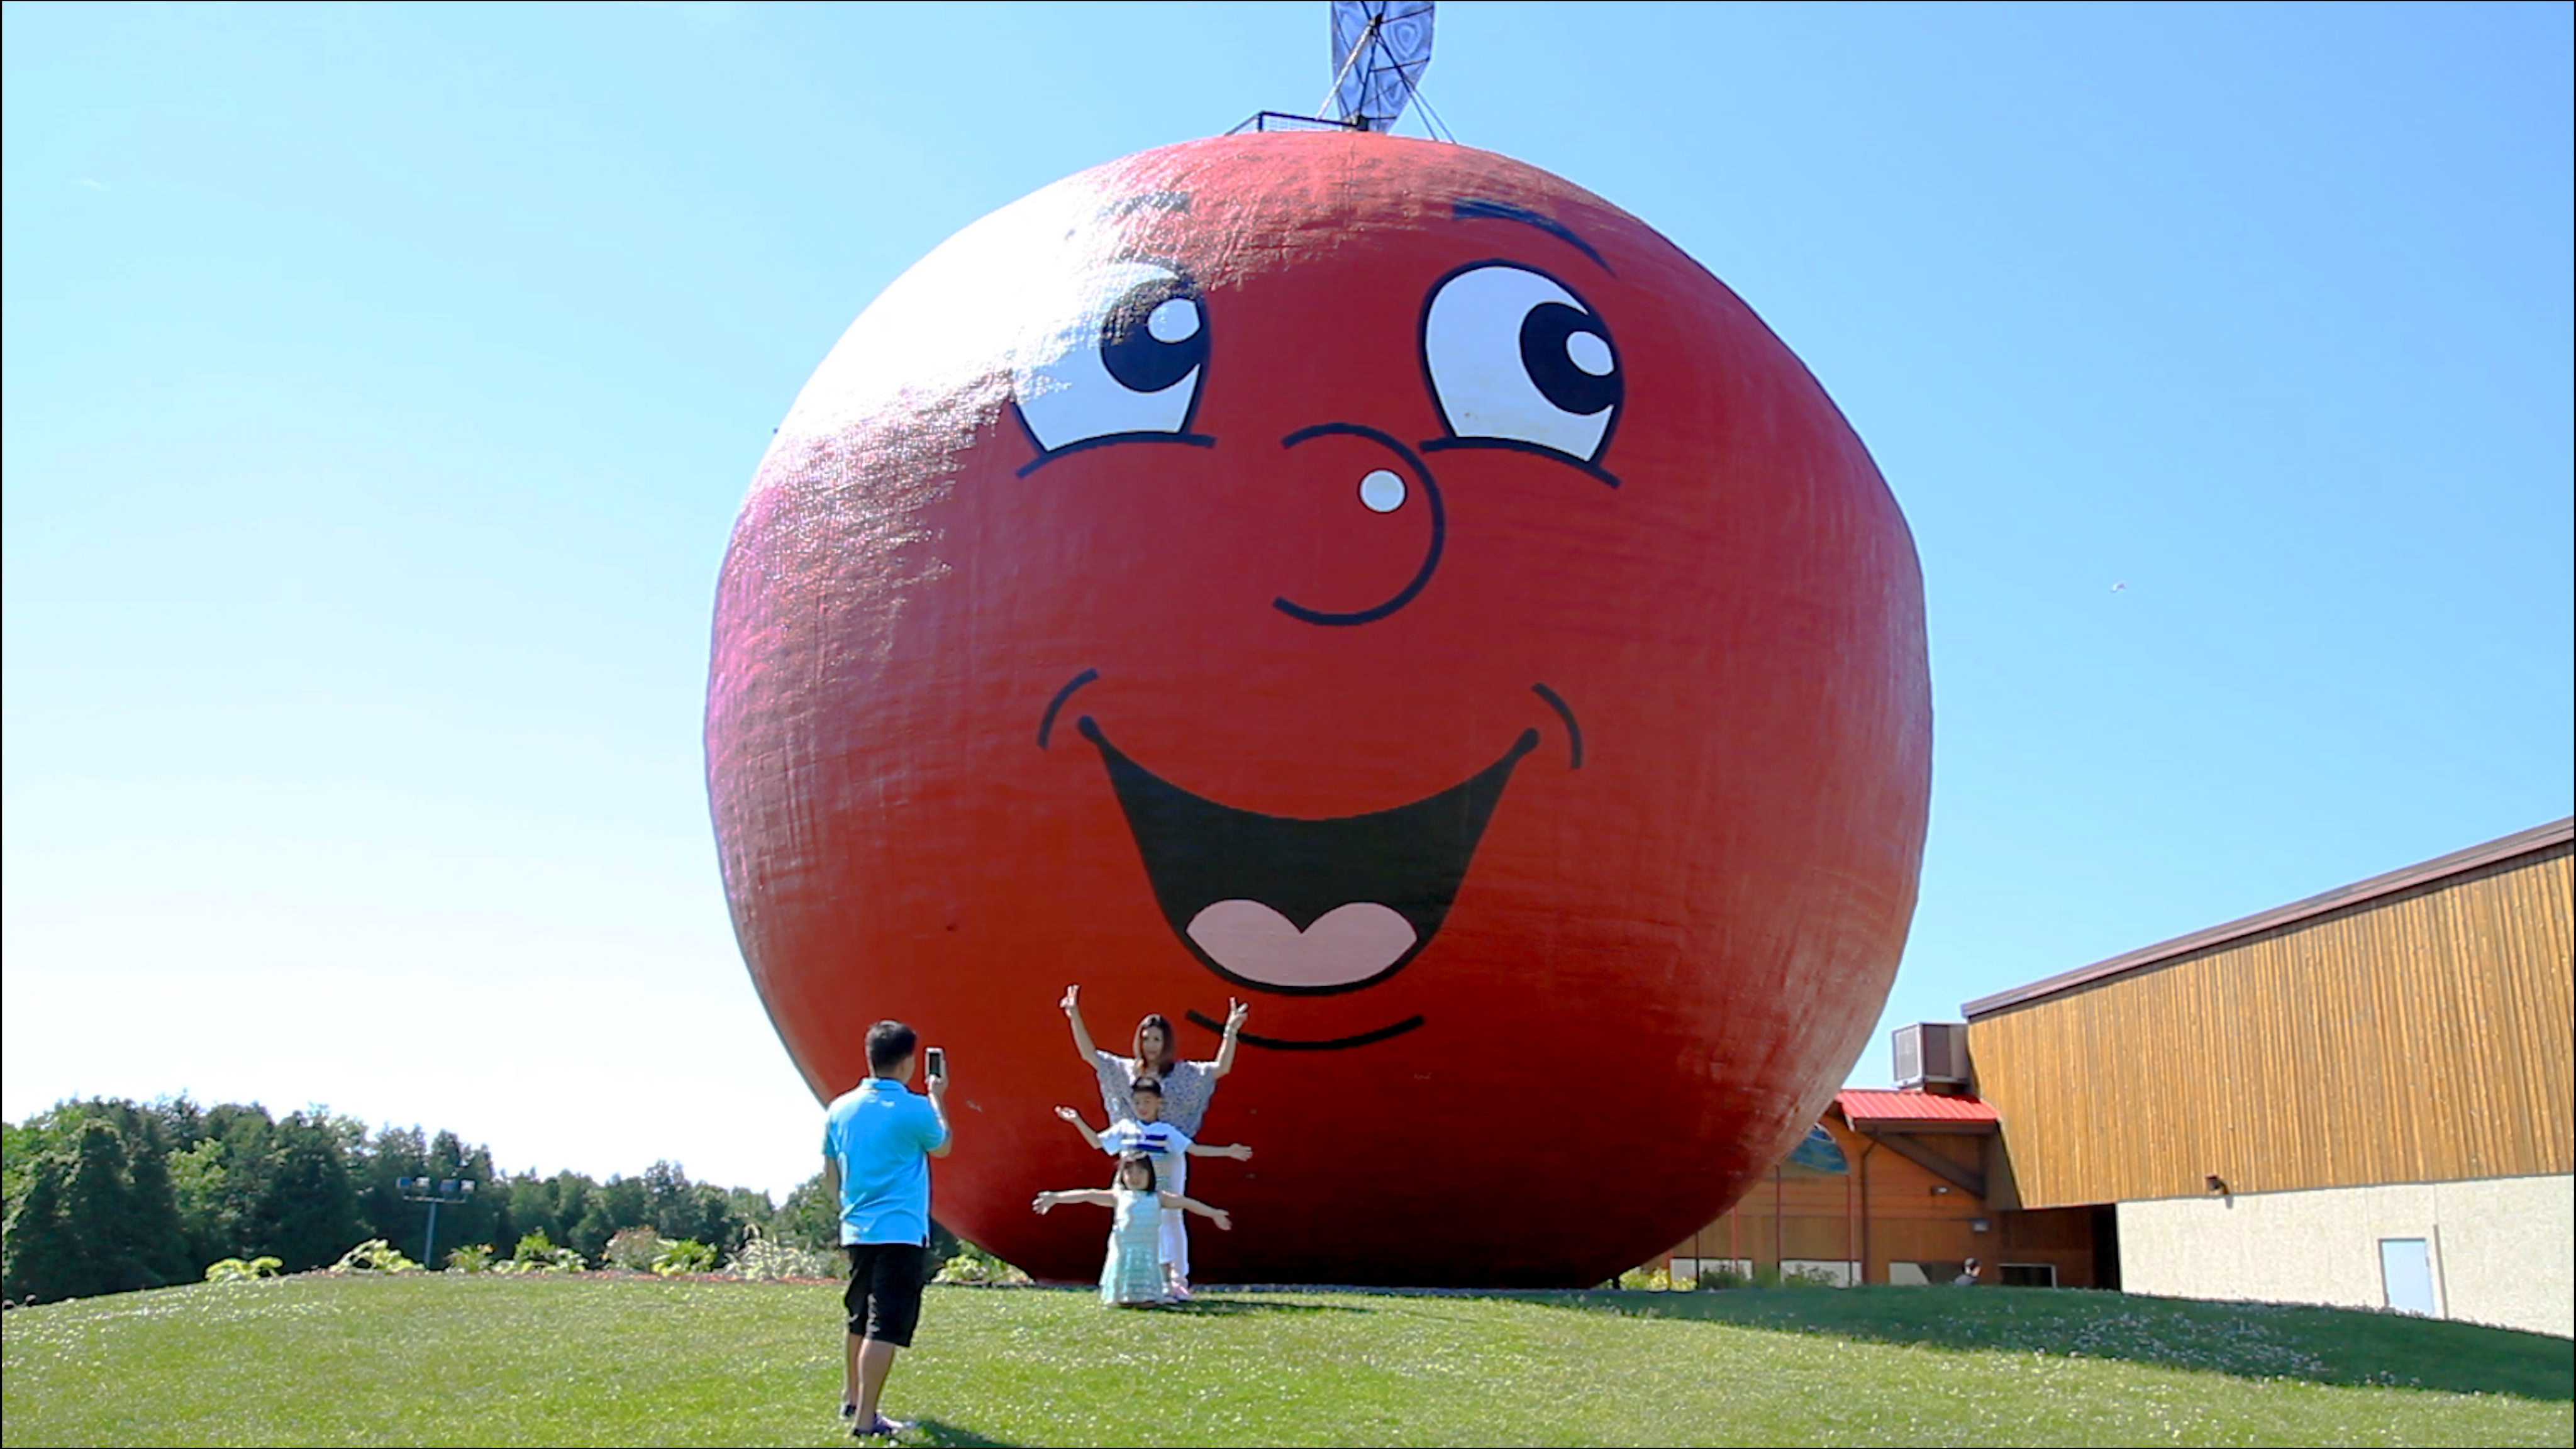 two people in front of a giant apple with a smiley face